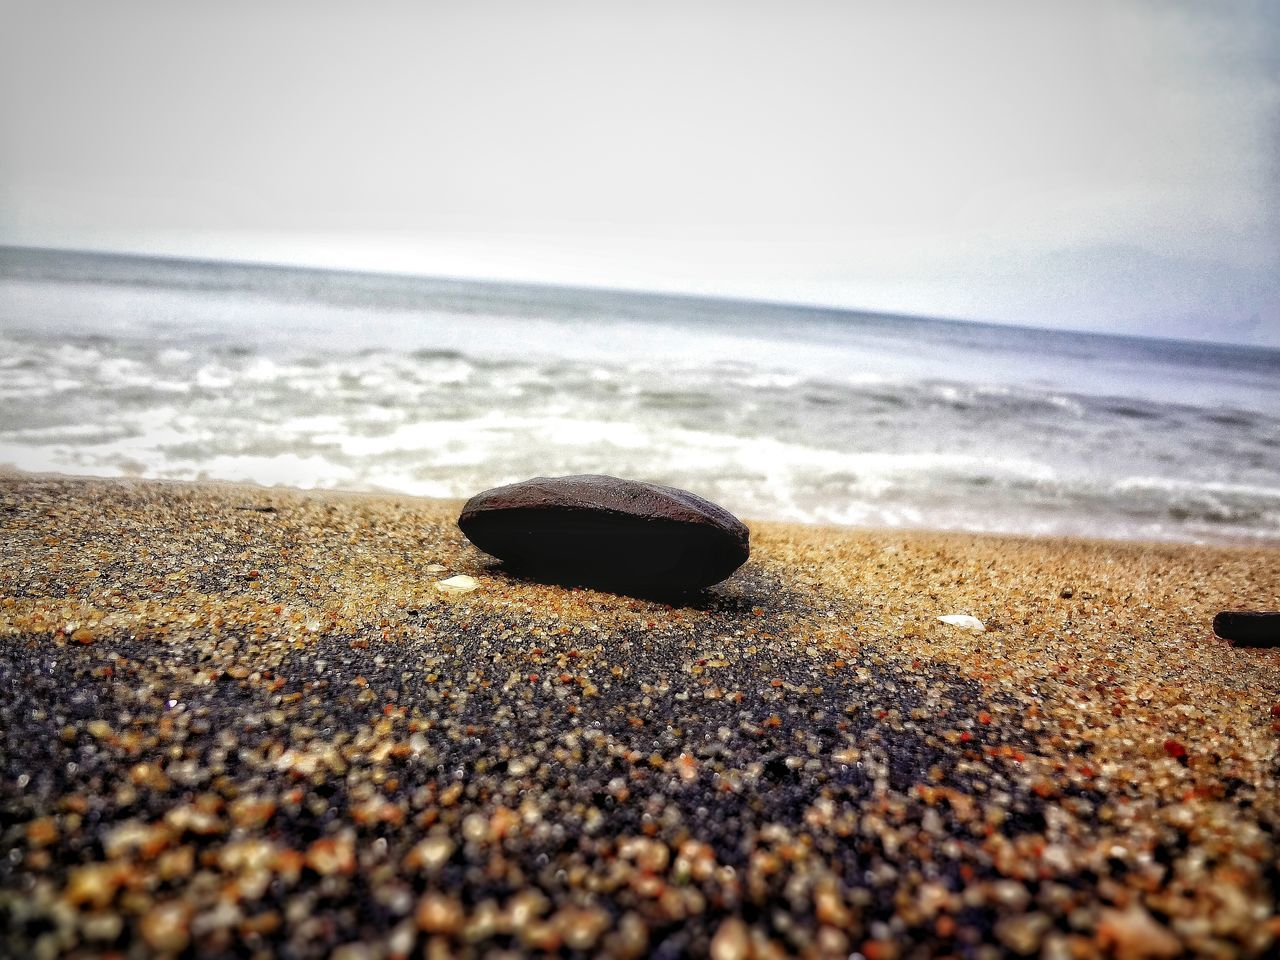 beach, sea, sand, shore, horizon over water, water, nature, tranquil scene, surface level, pebble, day, outdoors, tranquility, no people, scenics, beauty in nature, seashell, pebble beach, wave, close-up, sky